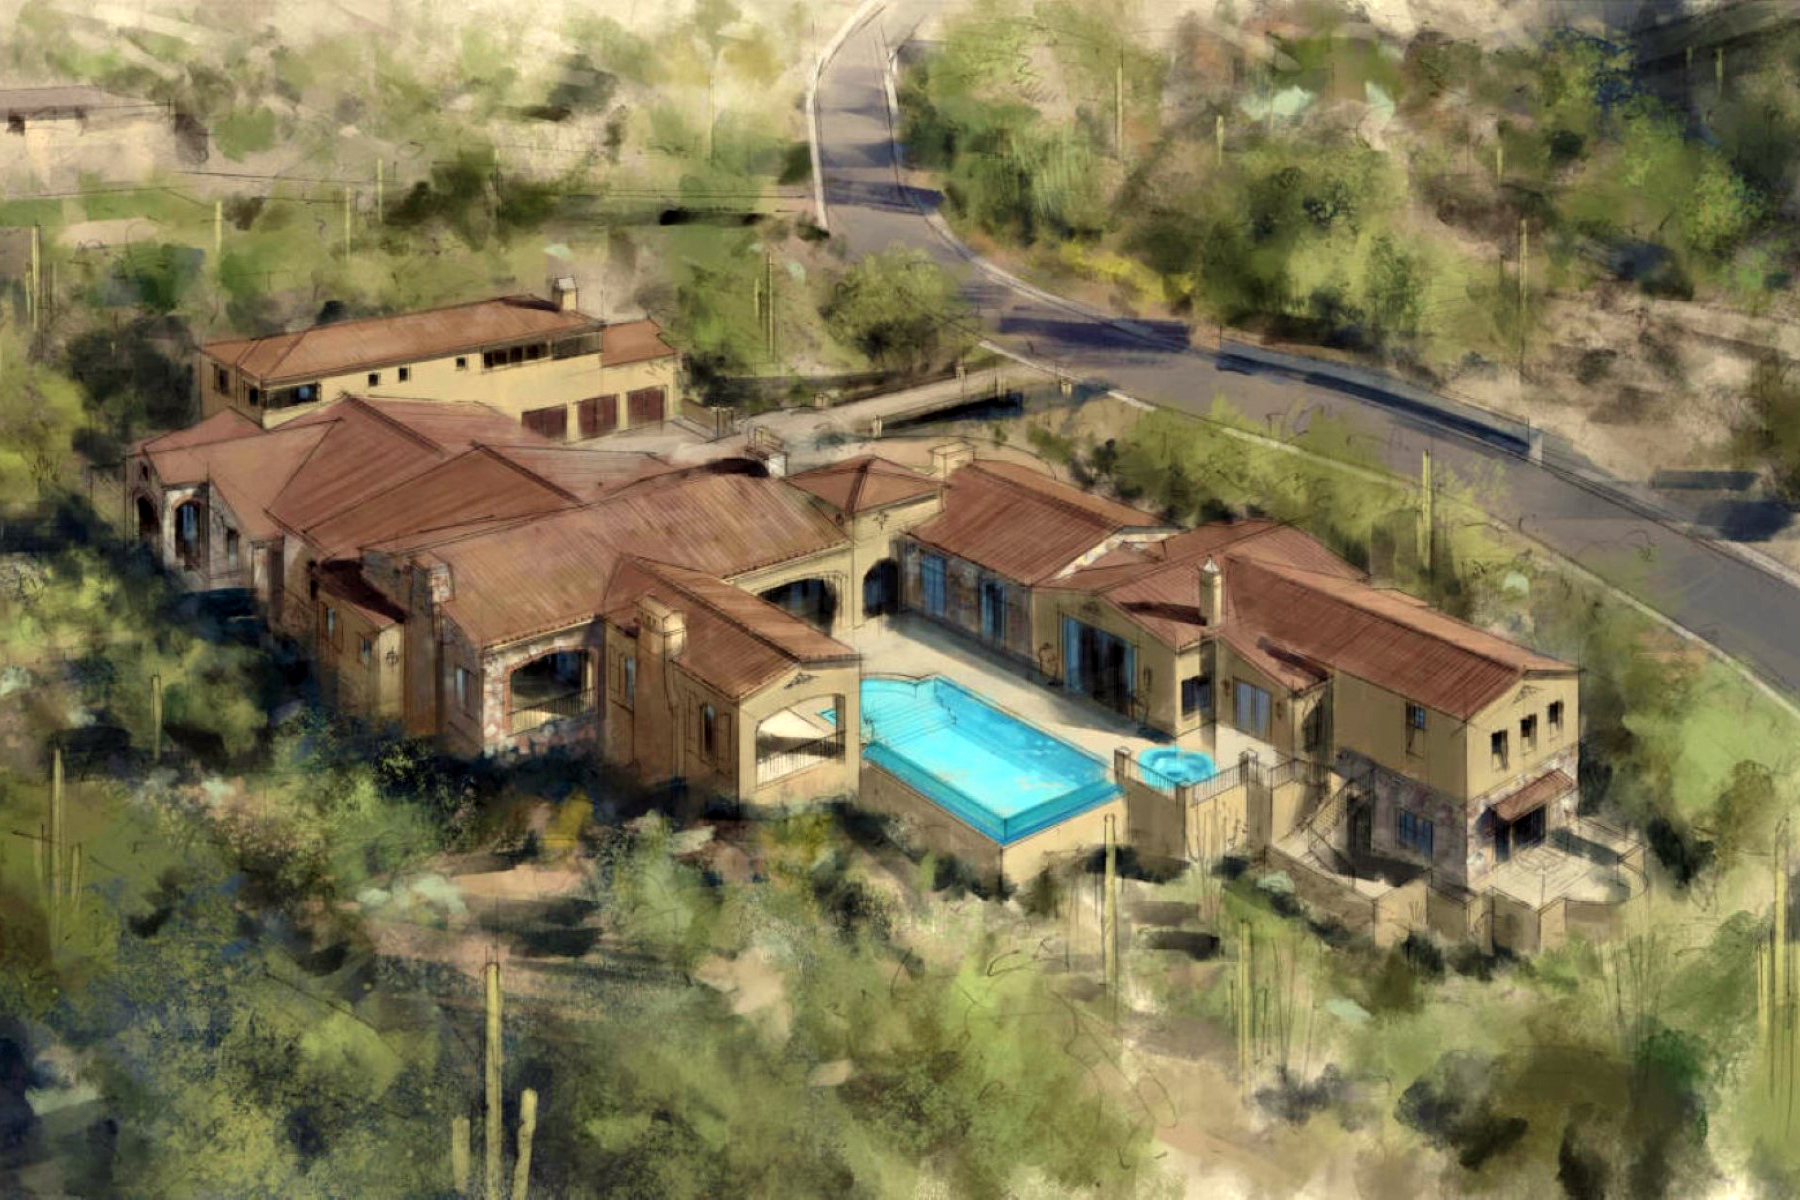 獨棟家庭住宅 為 出售 在 Stunning Silverleaf Luxury New Build With Valley Views 11004 E Feathersong Lane Scottsdale, 亞利桑那州 85255 美國